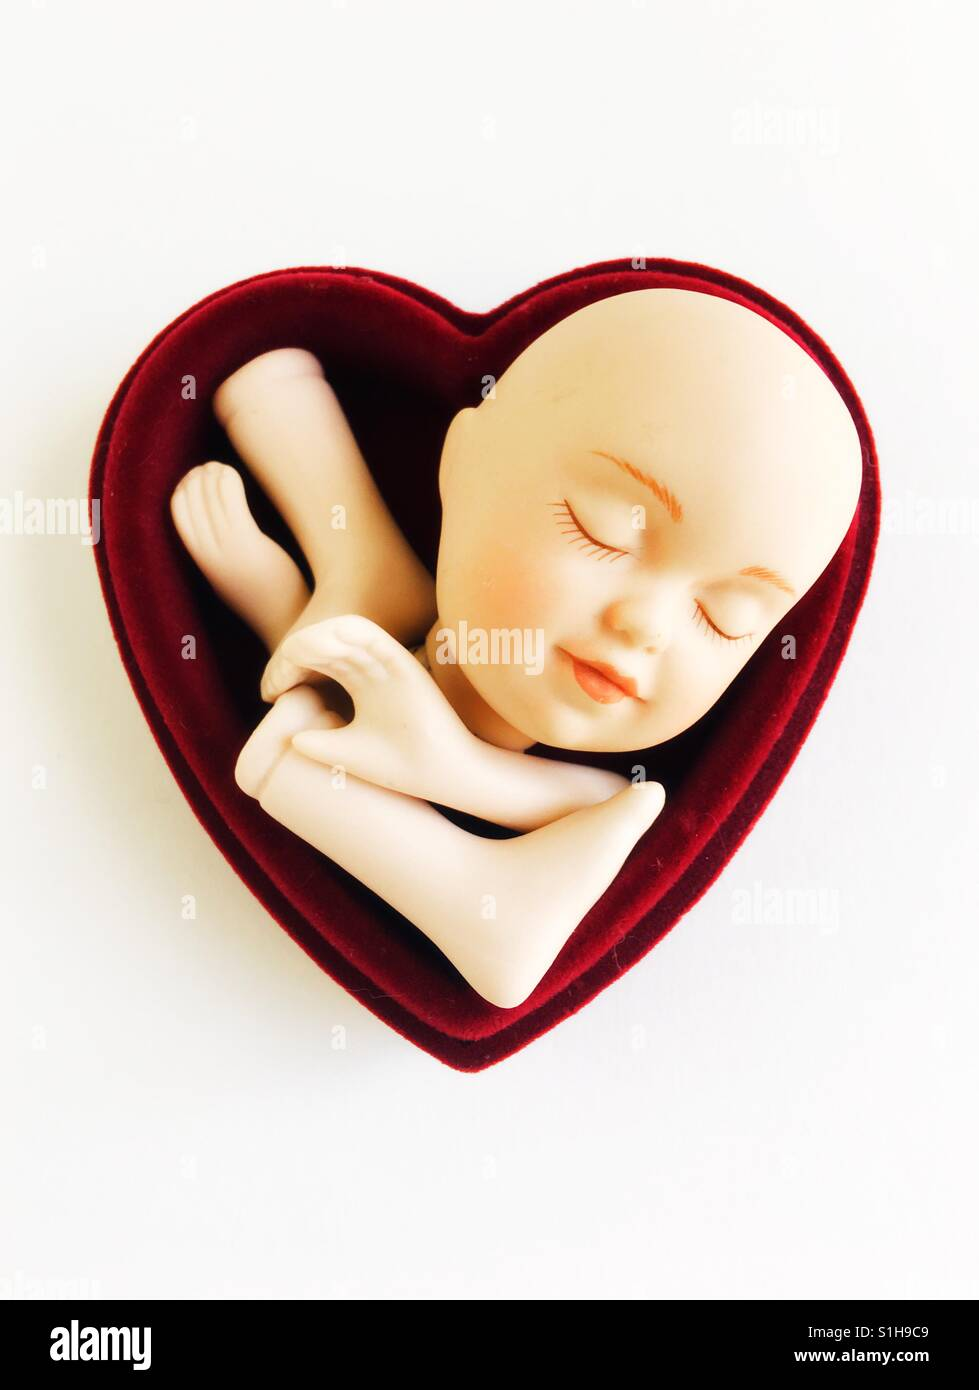 A heart with doll parts. - Stock Image